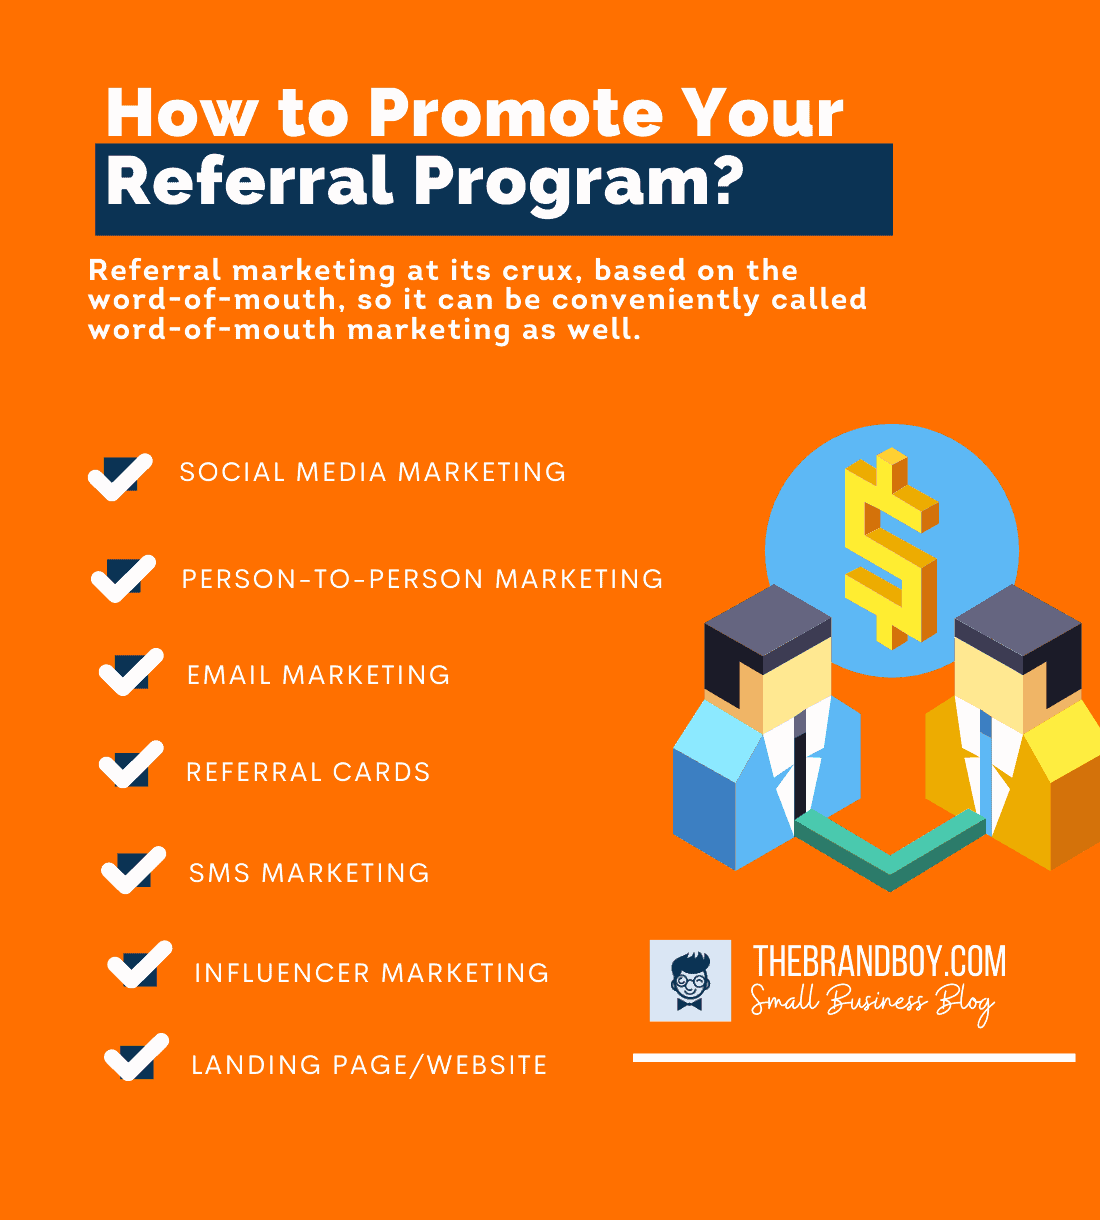 how to promote referral program